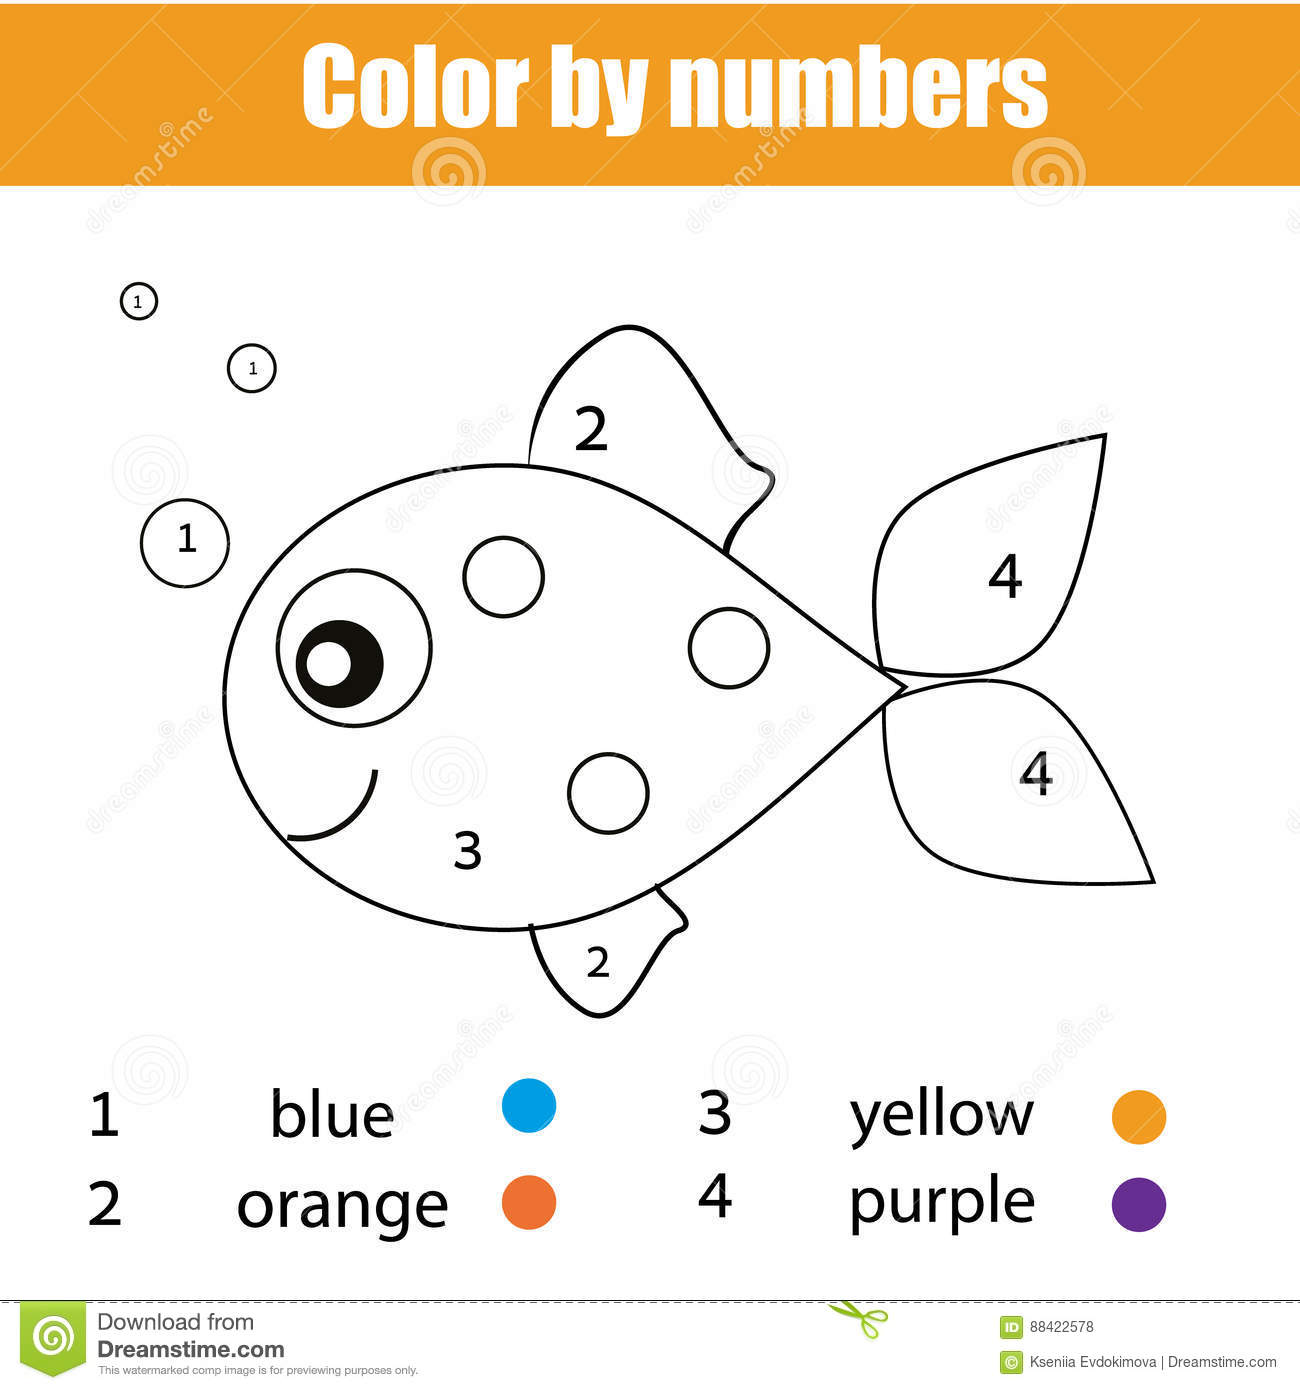 Download Coloring Page With Fish Character. Color By Numbers Educational  Children Game, Drawing Kids